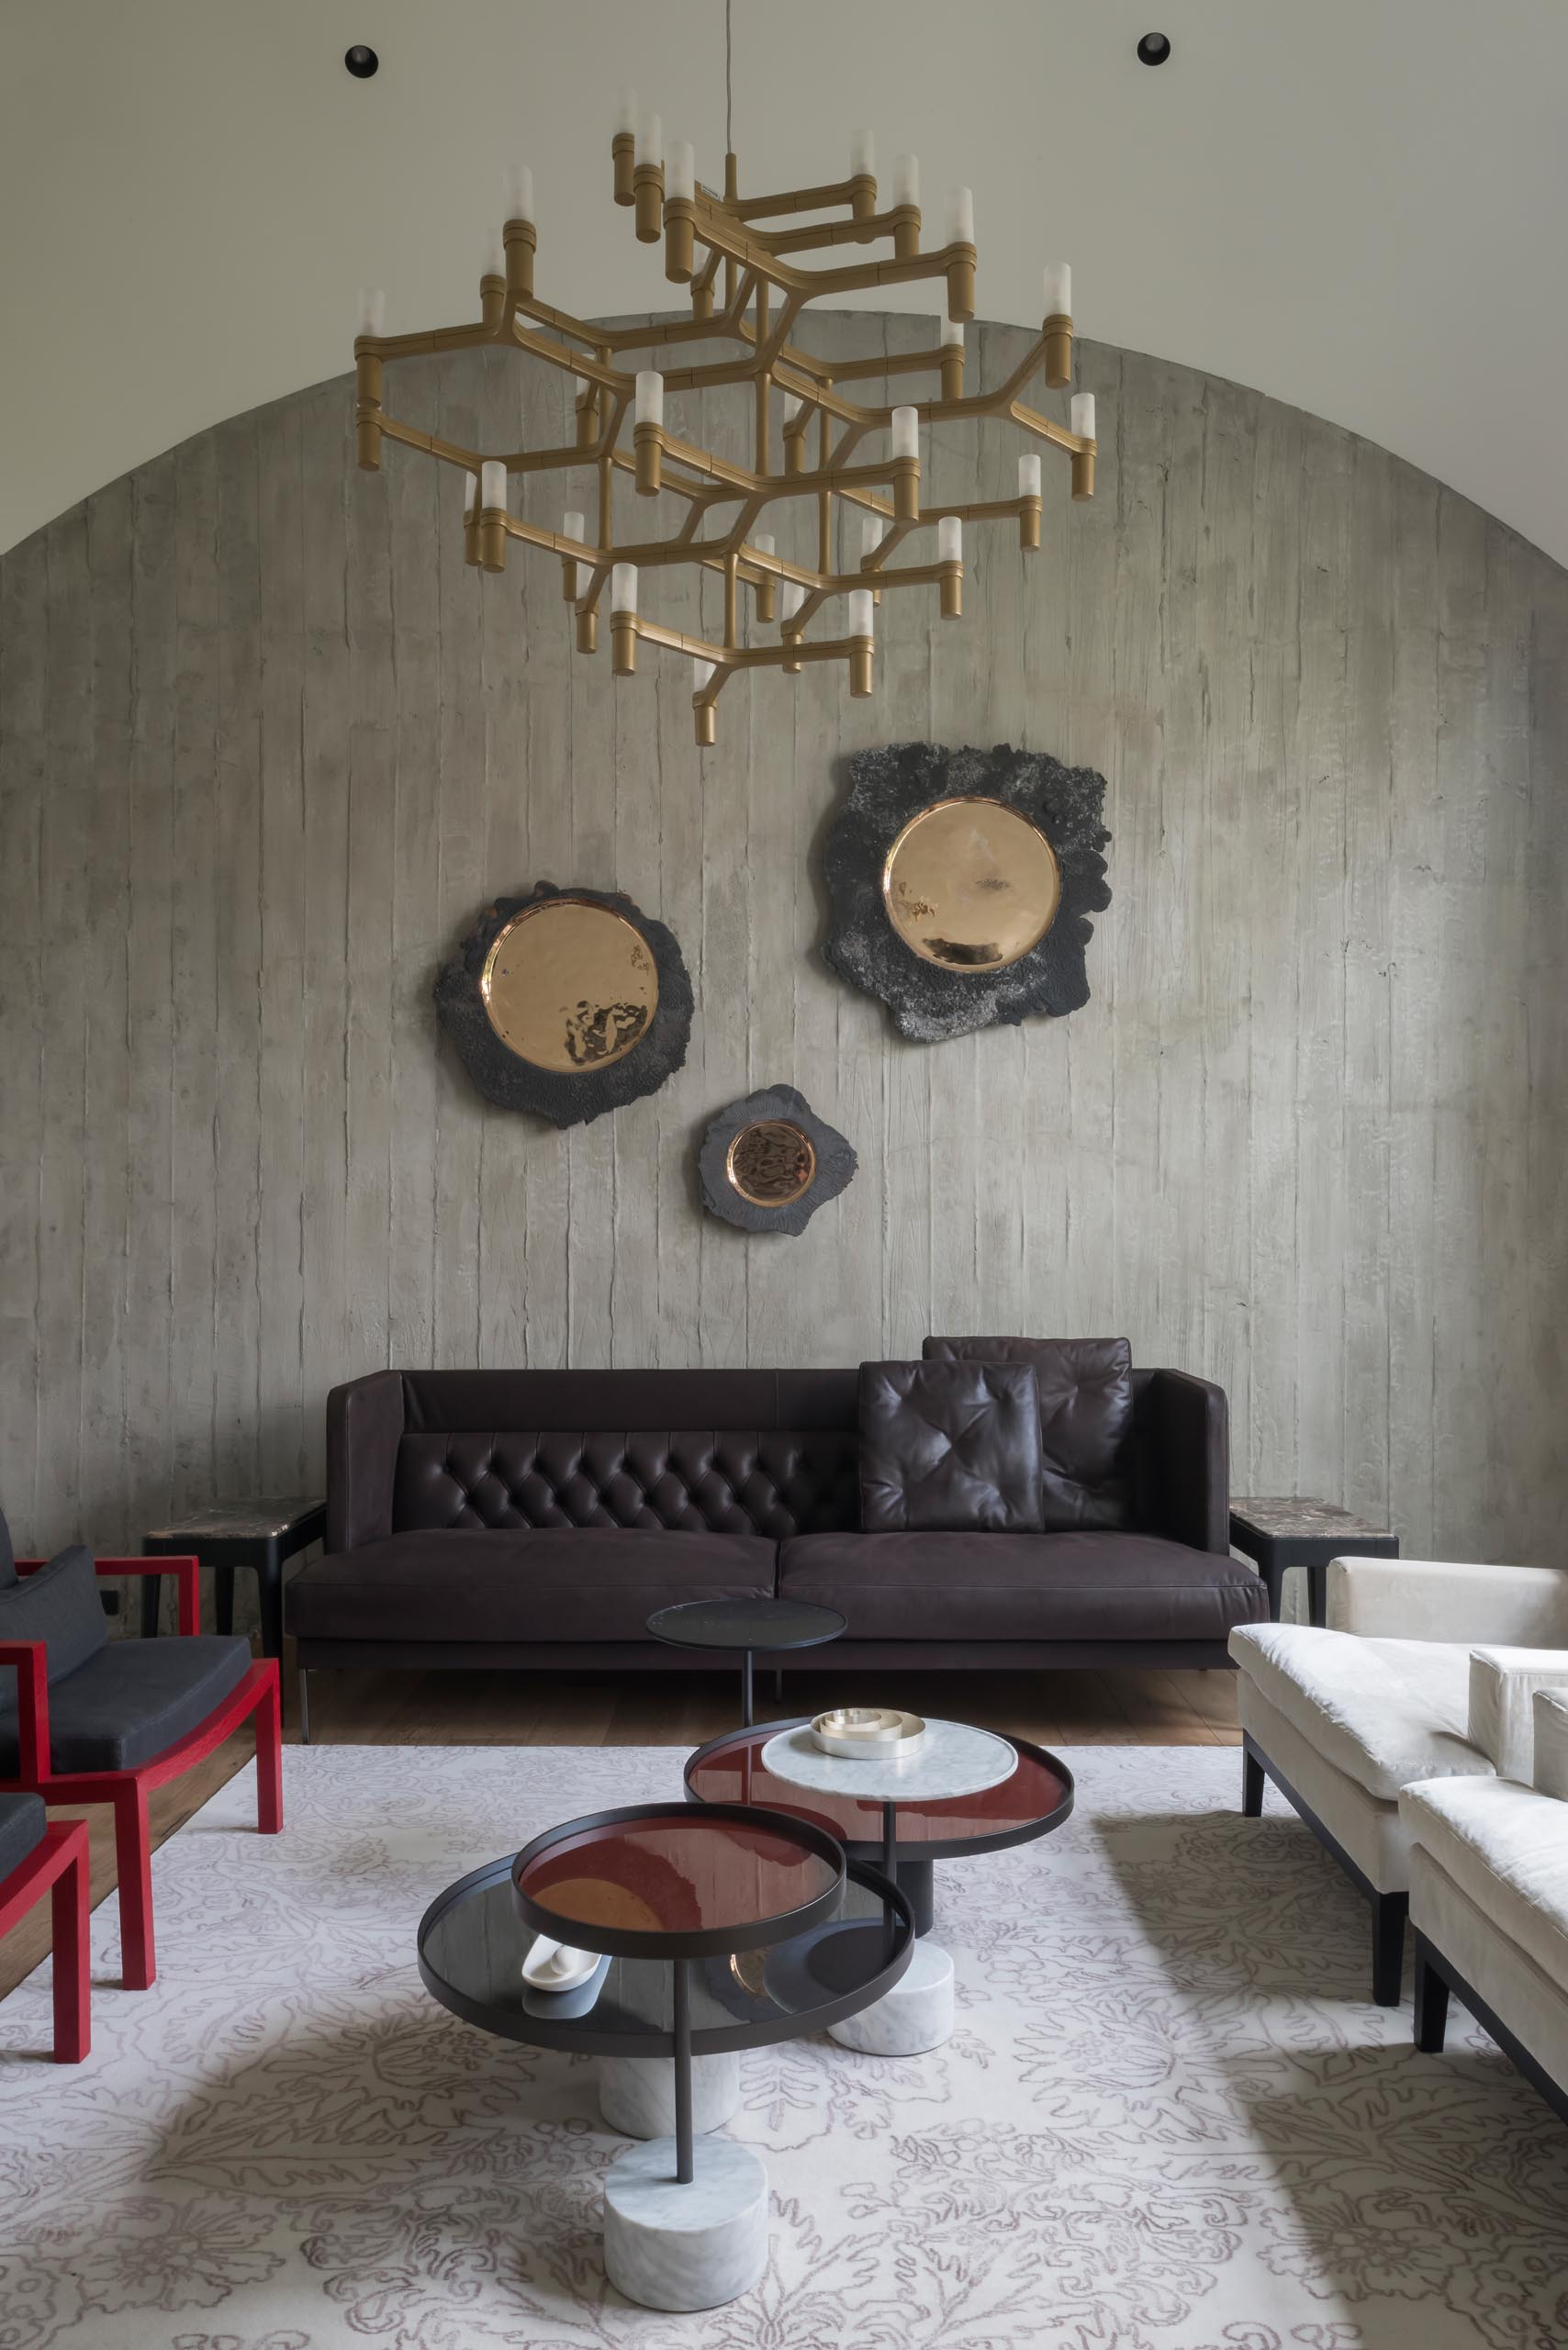 The living room has a curved ceiling, exposed concrete wall, and hardwood floors.